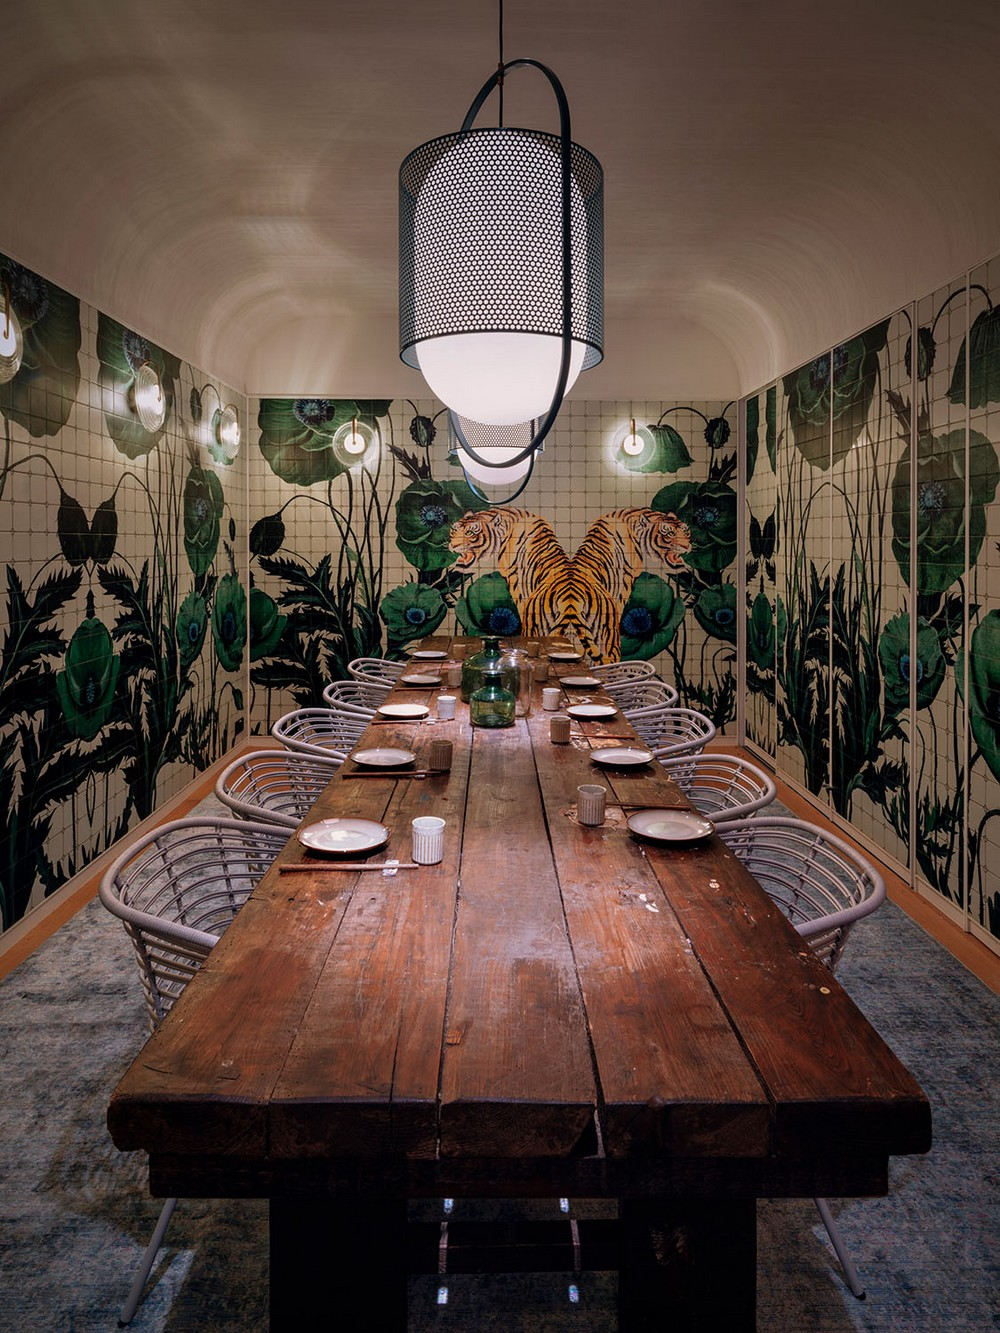 The Most Intriguing Designs Found in World-Renowned Luxury Restaurants 7 luxury restaurants The Most Intriguing Designs Found in World-Renowned Luxury Restaurants The Most Intriguing Designs Found in World Renowned Luxury Restaurants 7